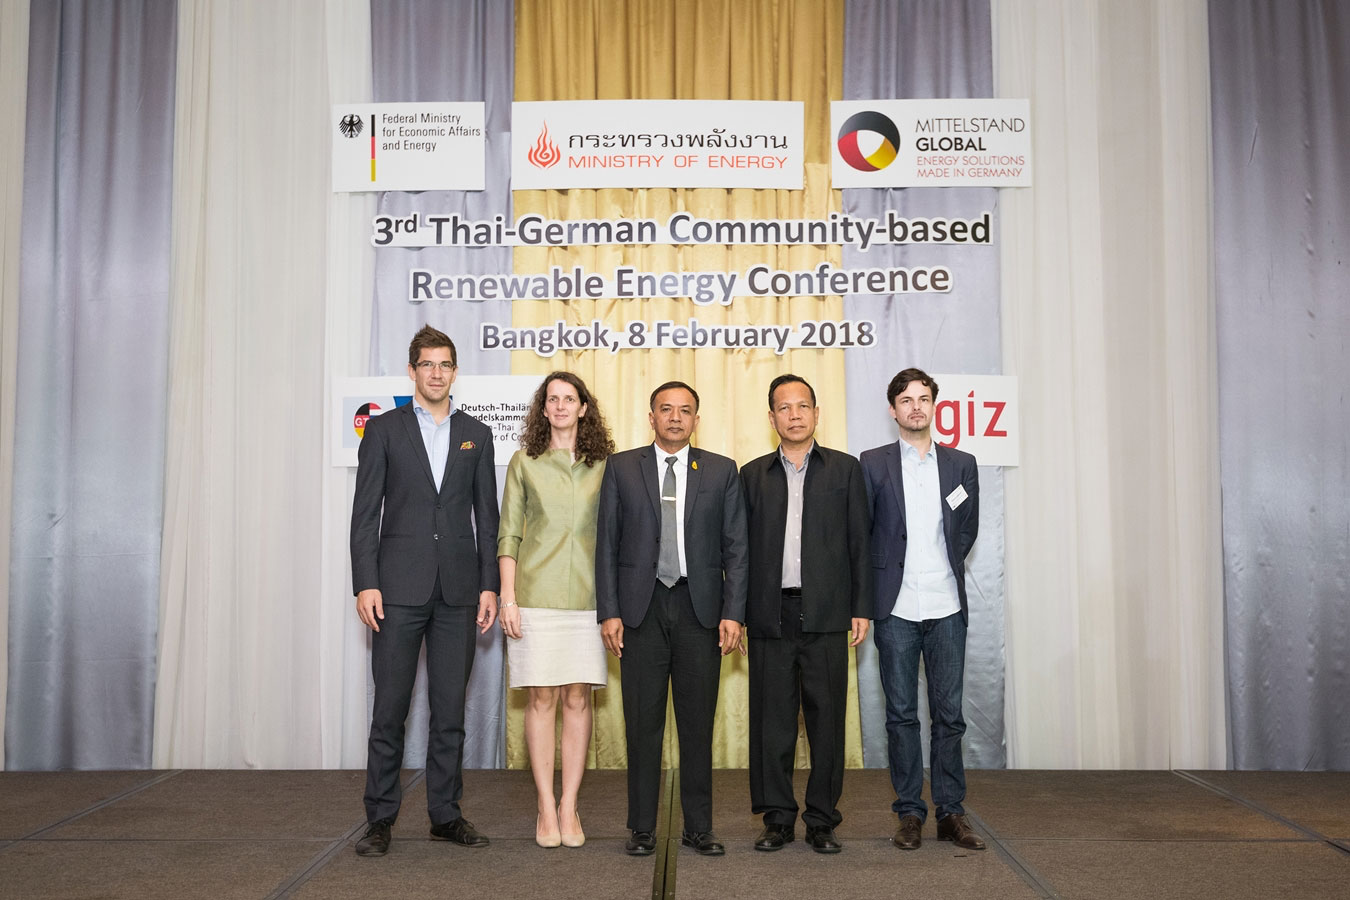 Thai communities and renewable energy providers collaborate